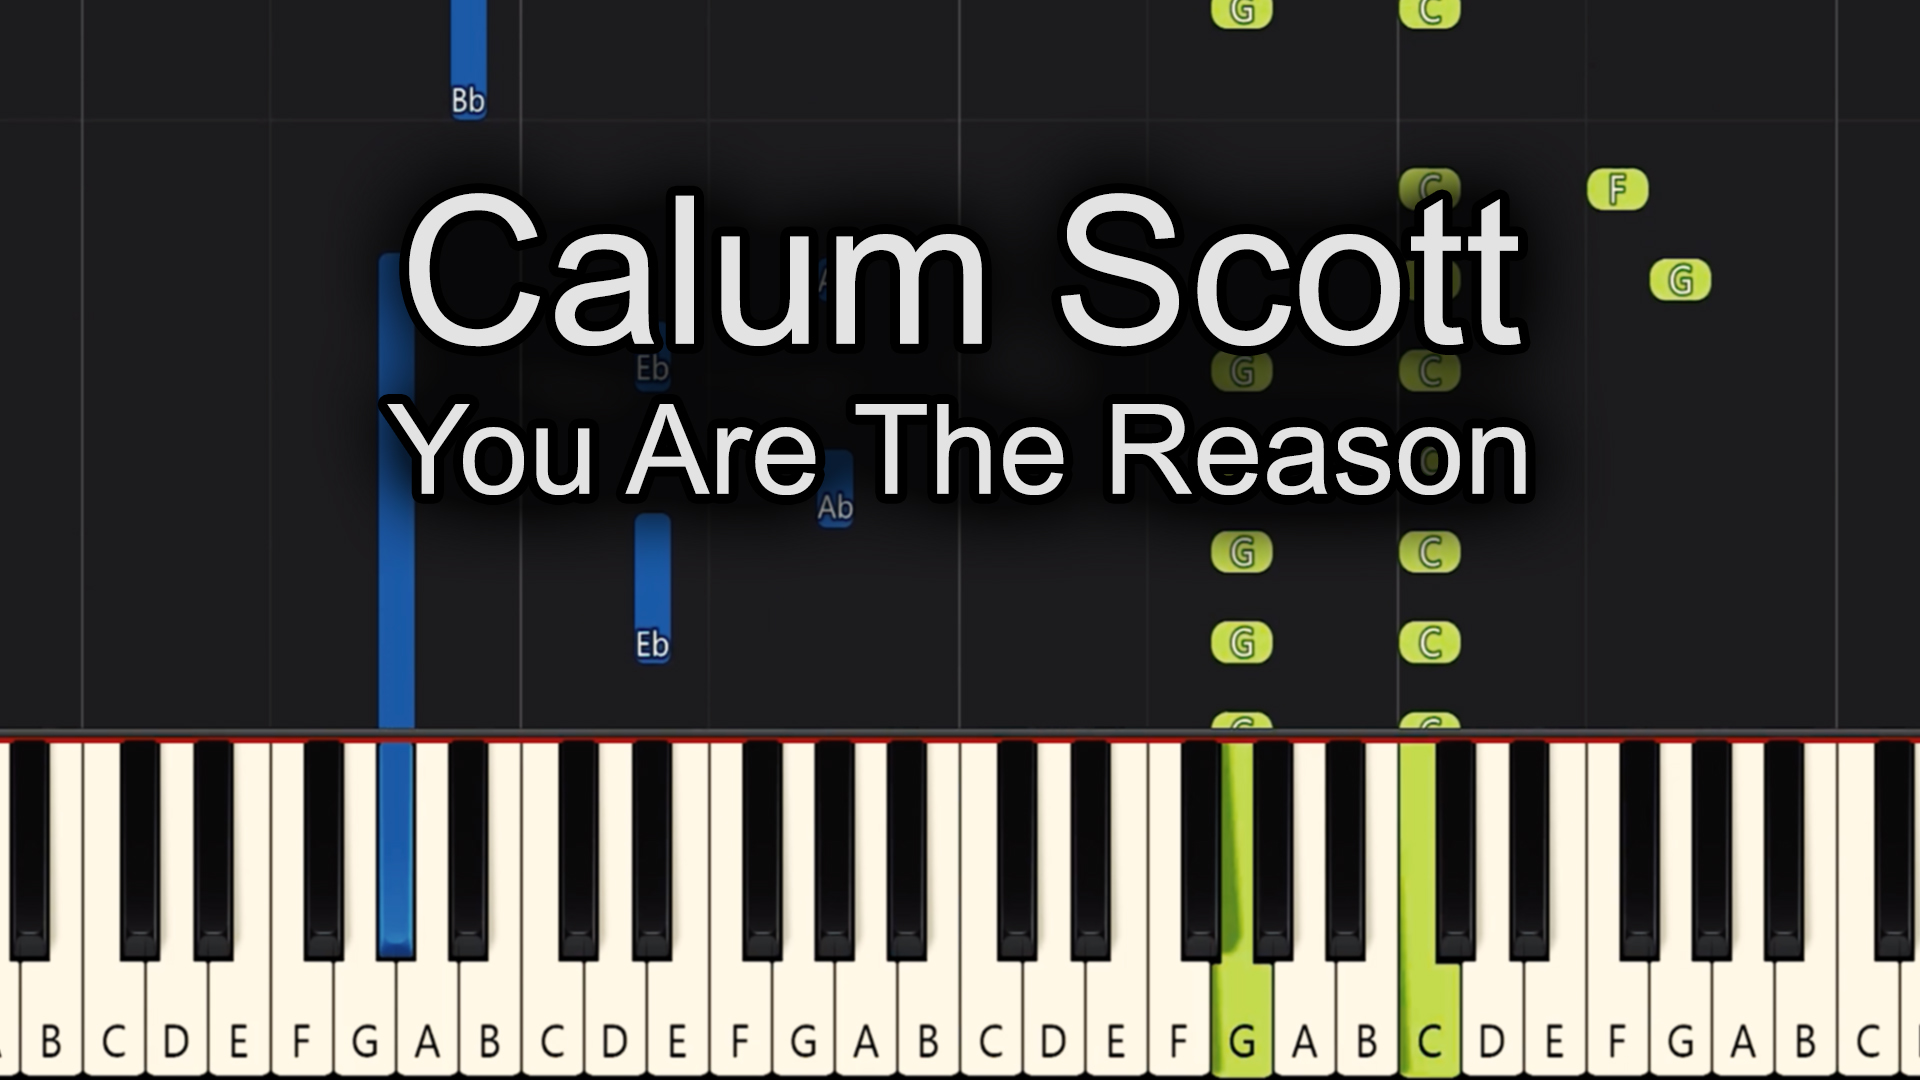 Calum Scott – You Are The Reason – Advanced